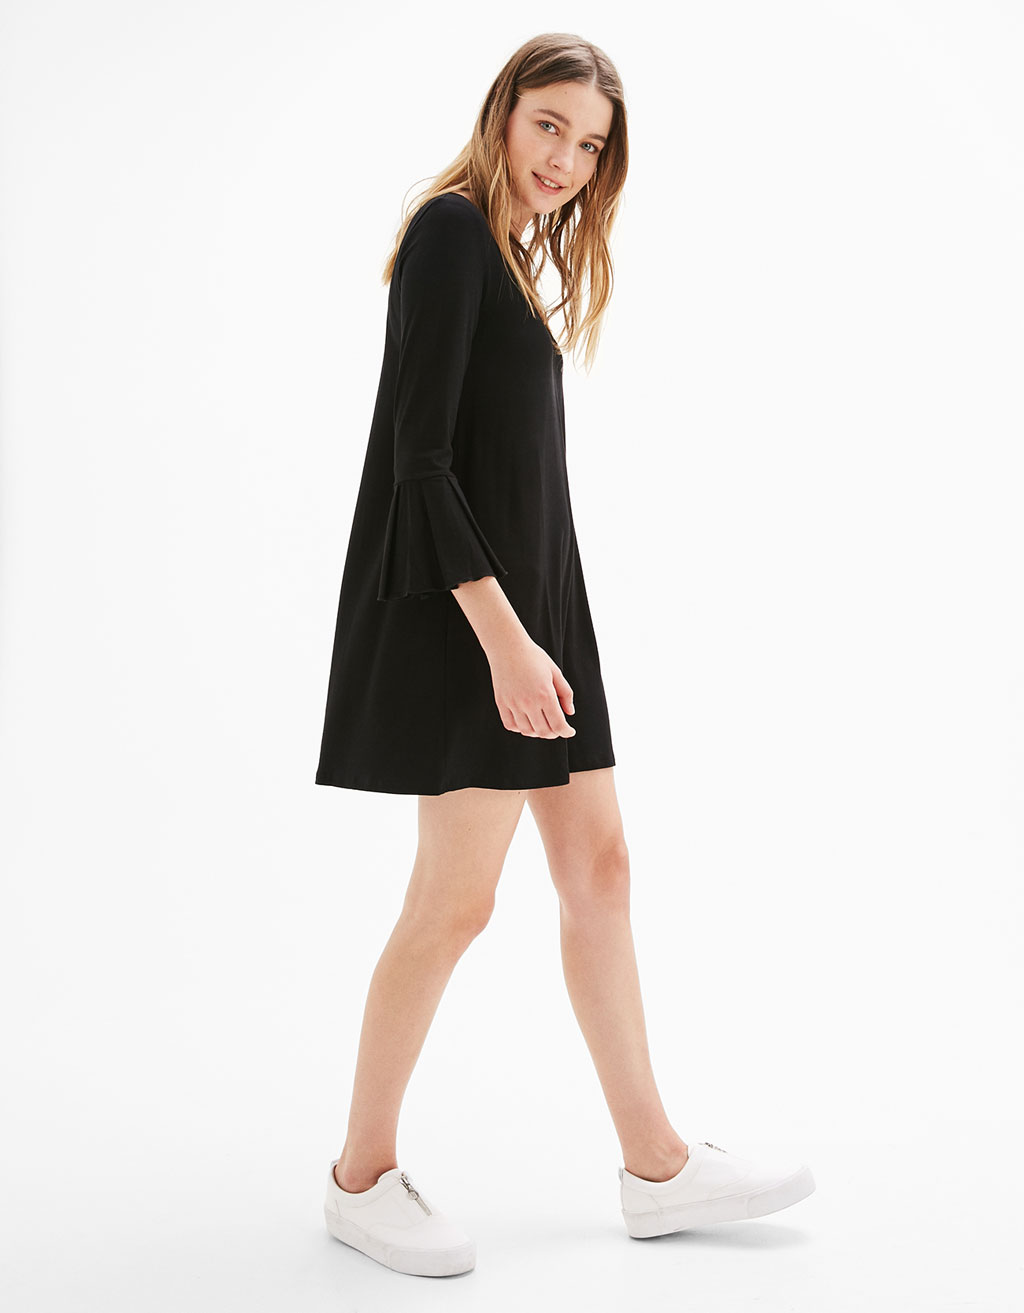 Baby doll dress with flared sleeves